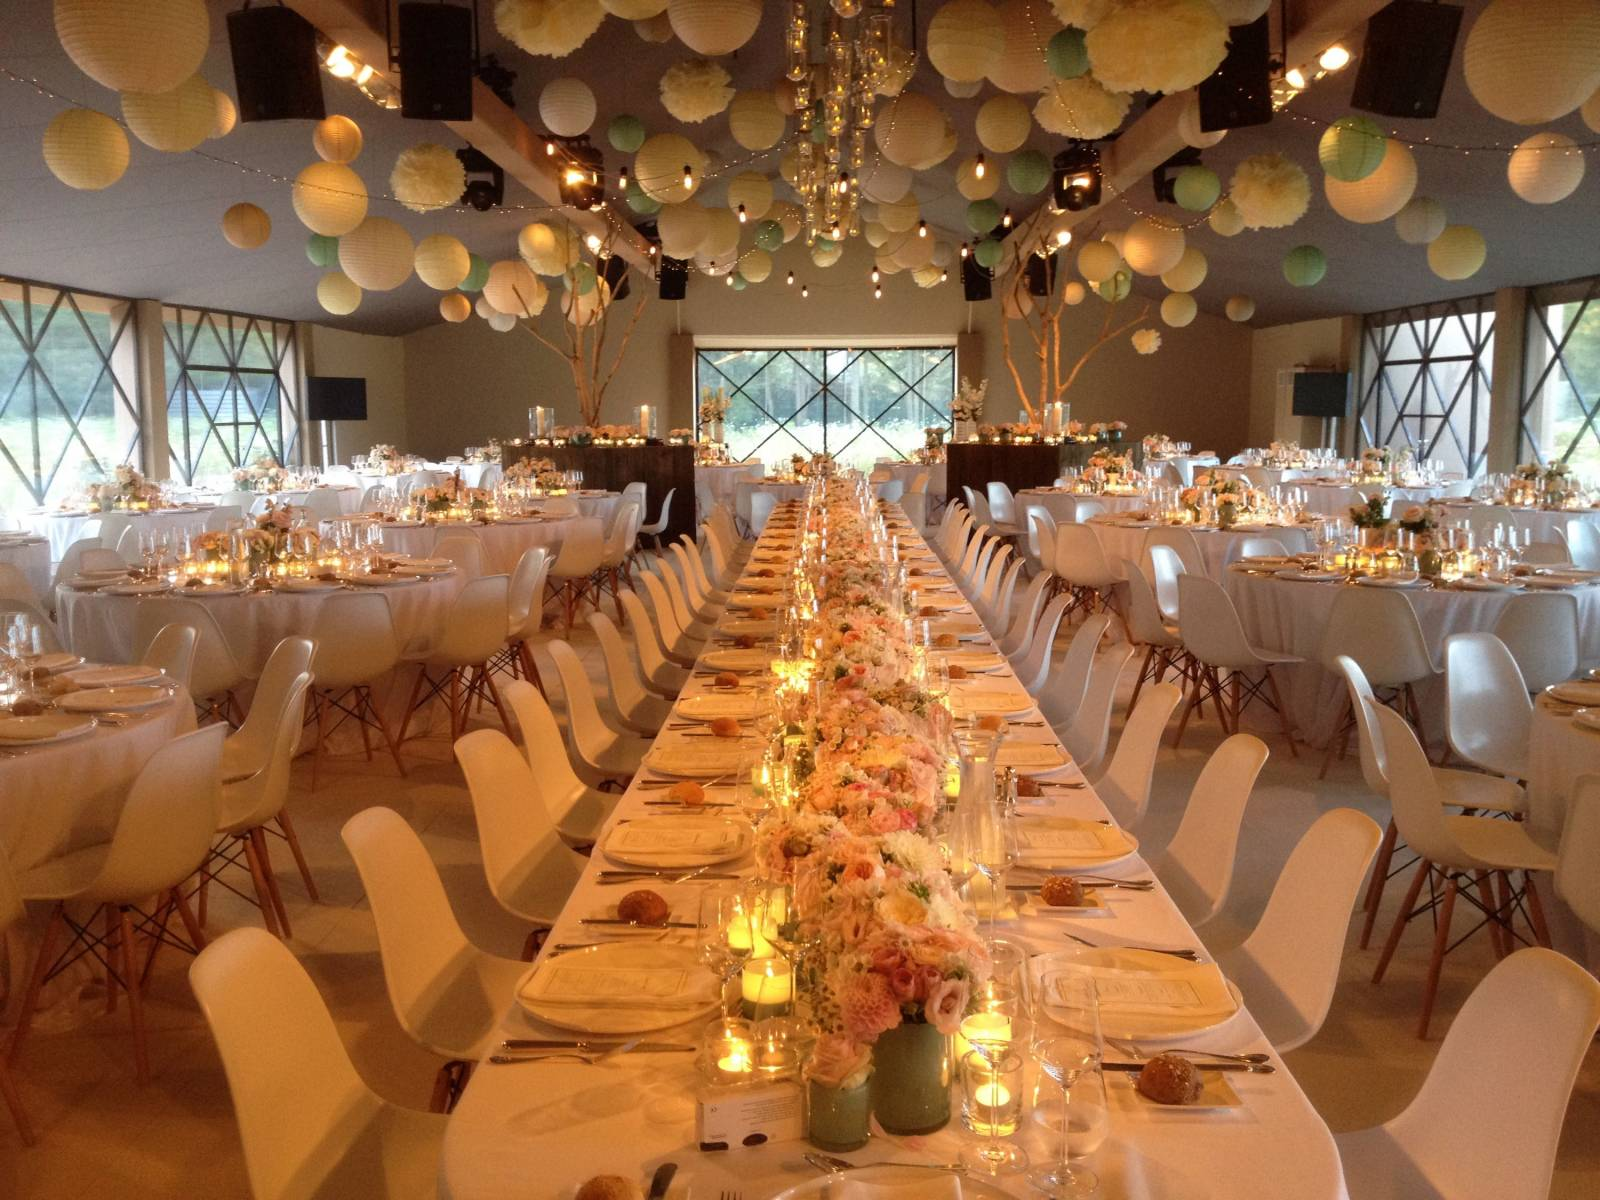 Hendrickx feesten - Catering - Traiteur - Cateraar - House of Weddings - 6